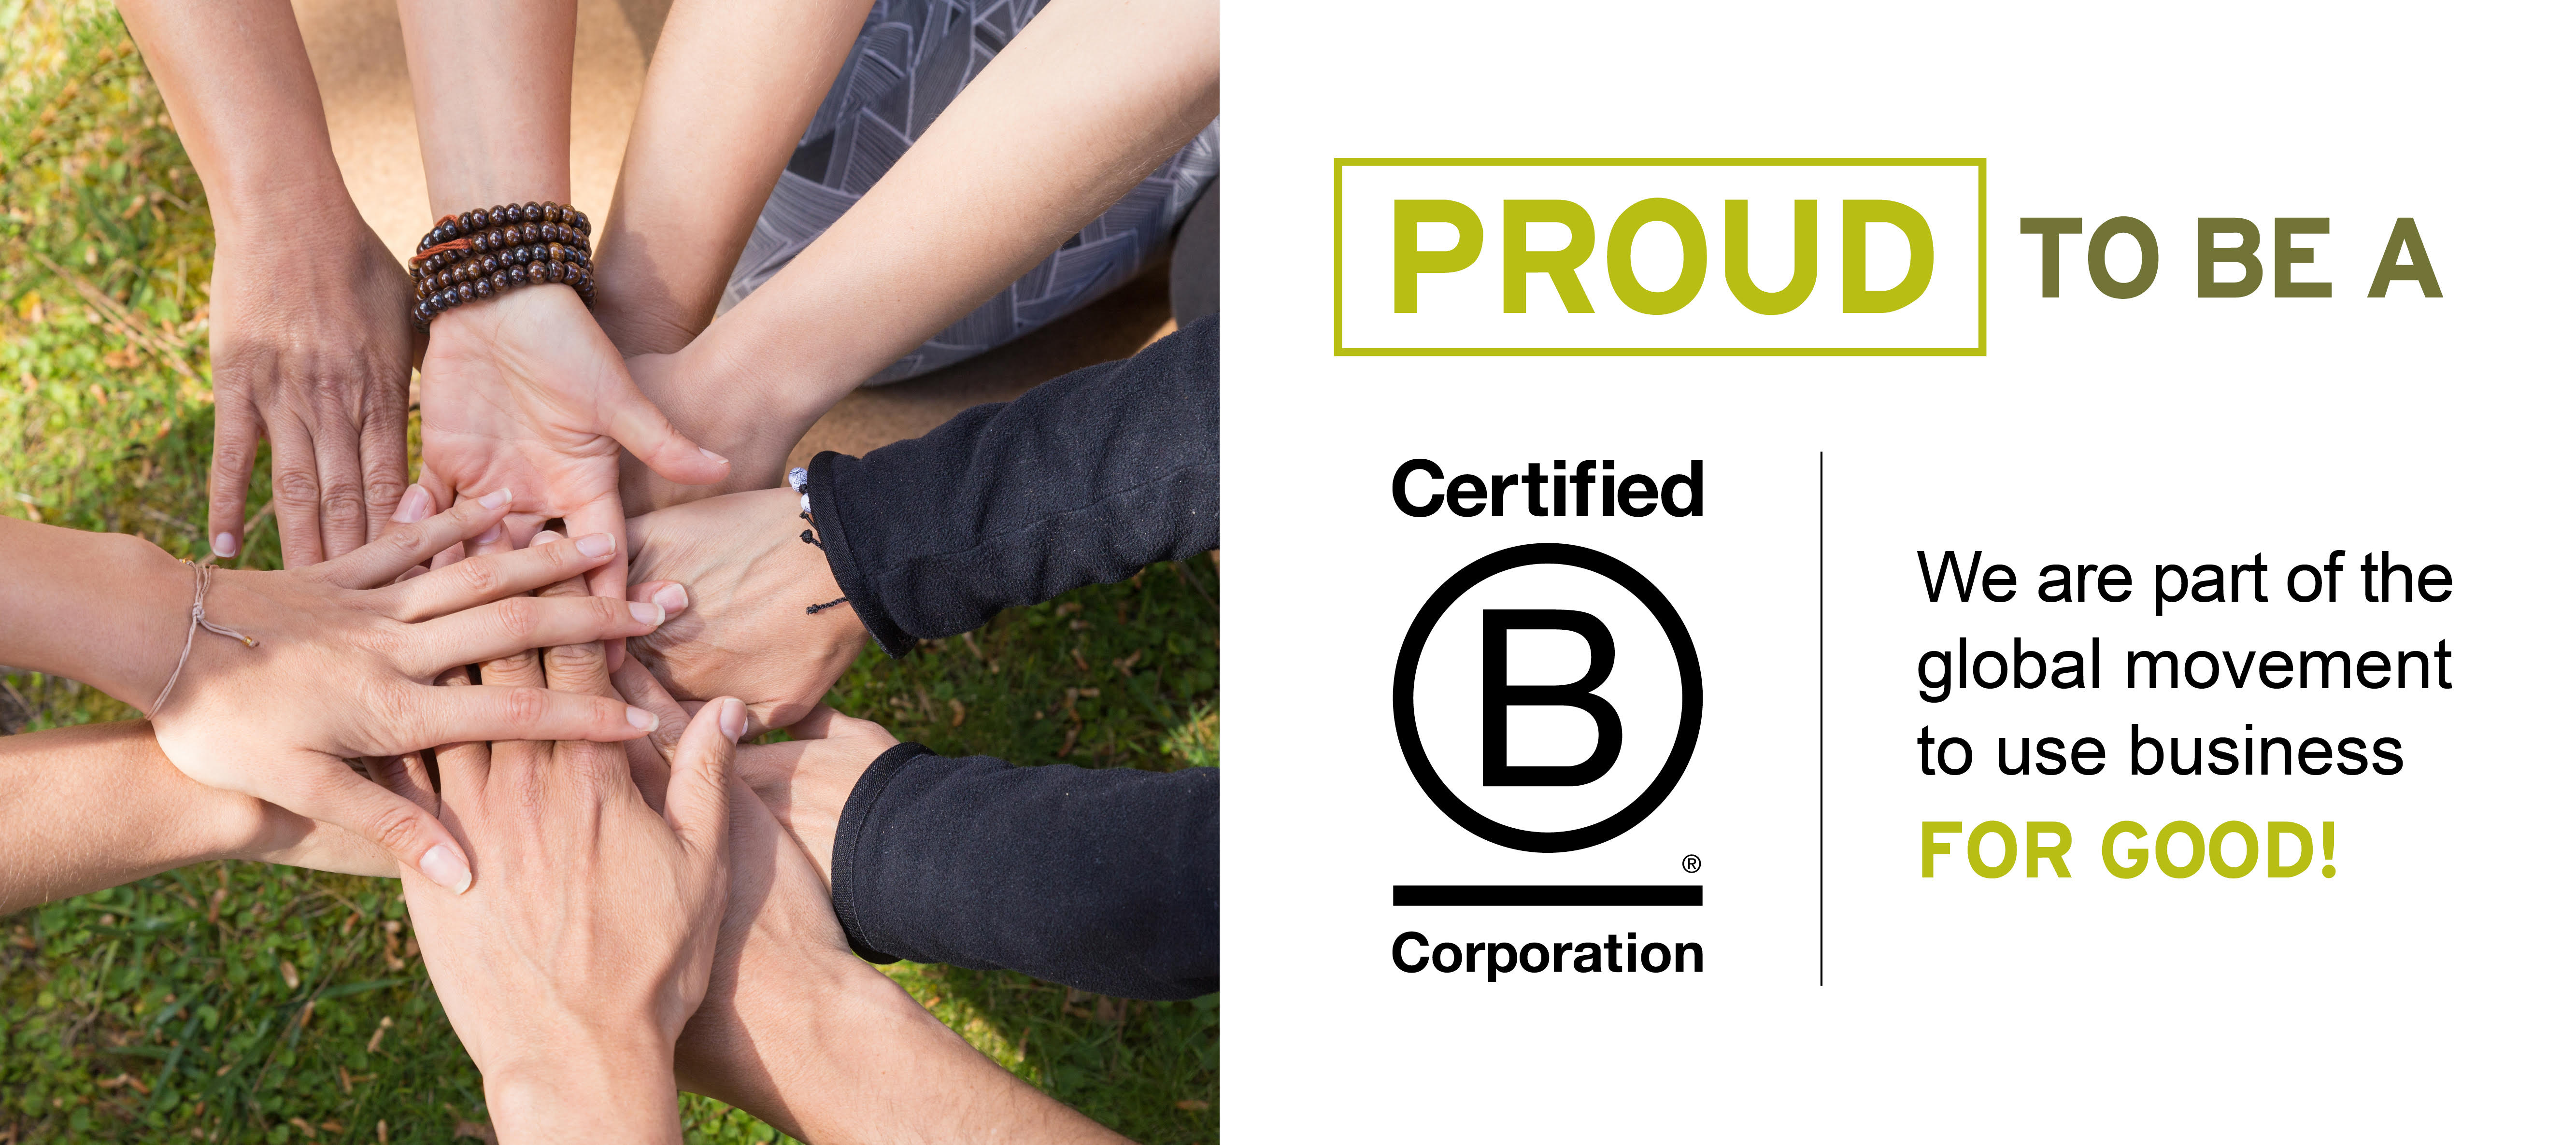 Certified B Corporation® | Hempfield Botanicals CBD